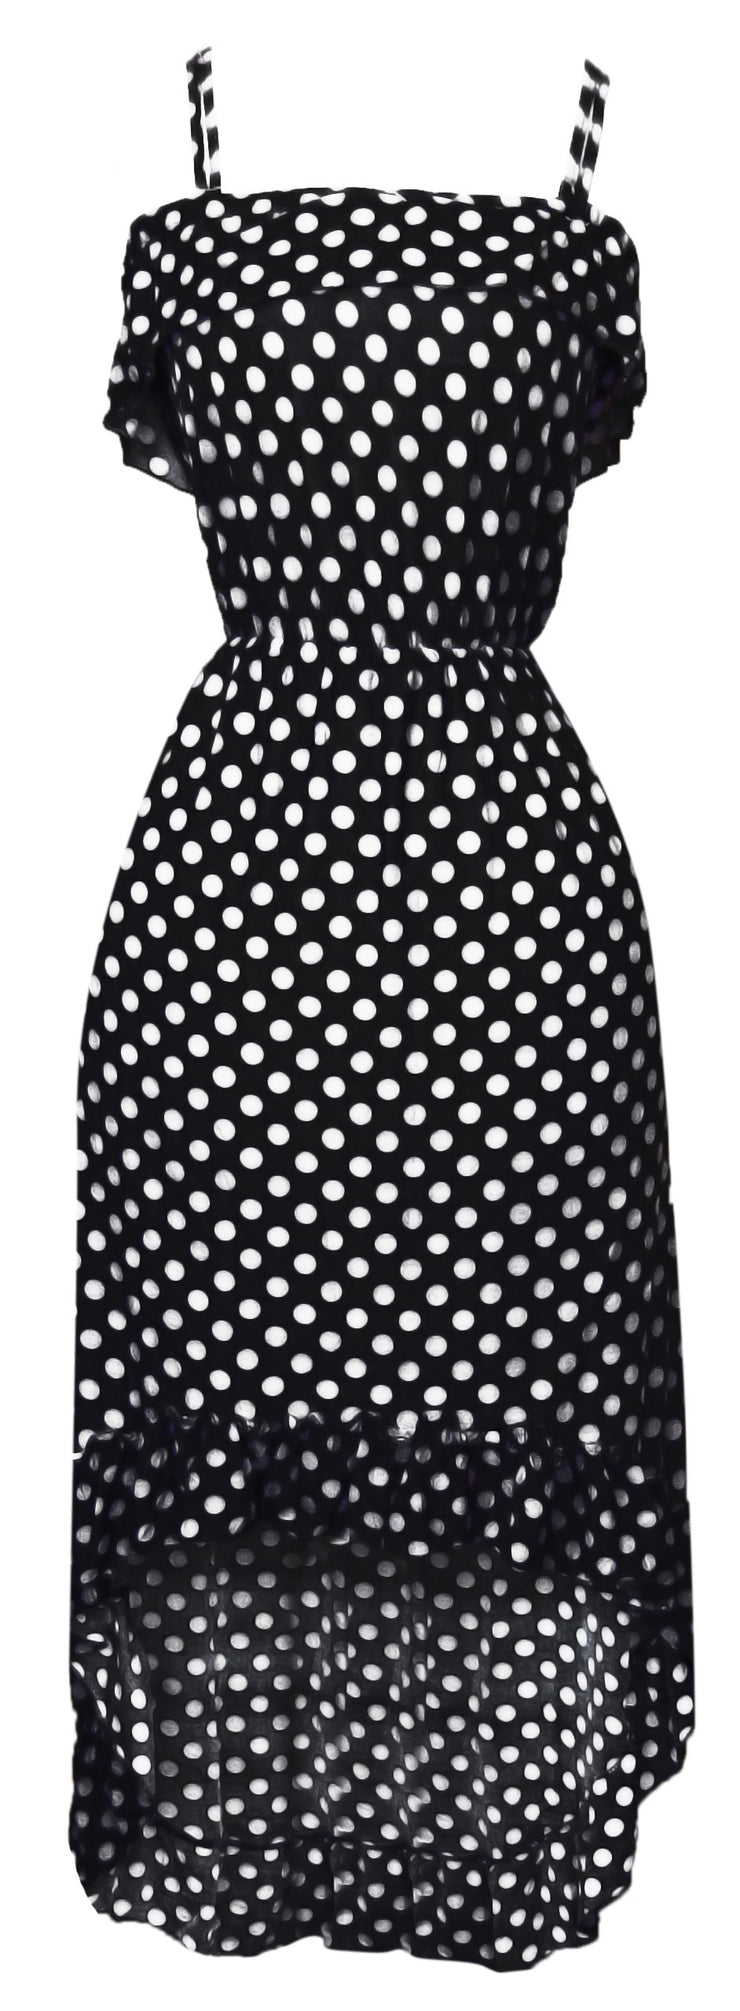 A1289-PolkaDot-Maxi-Dress-Blk-Whit-M-SM